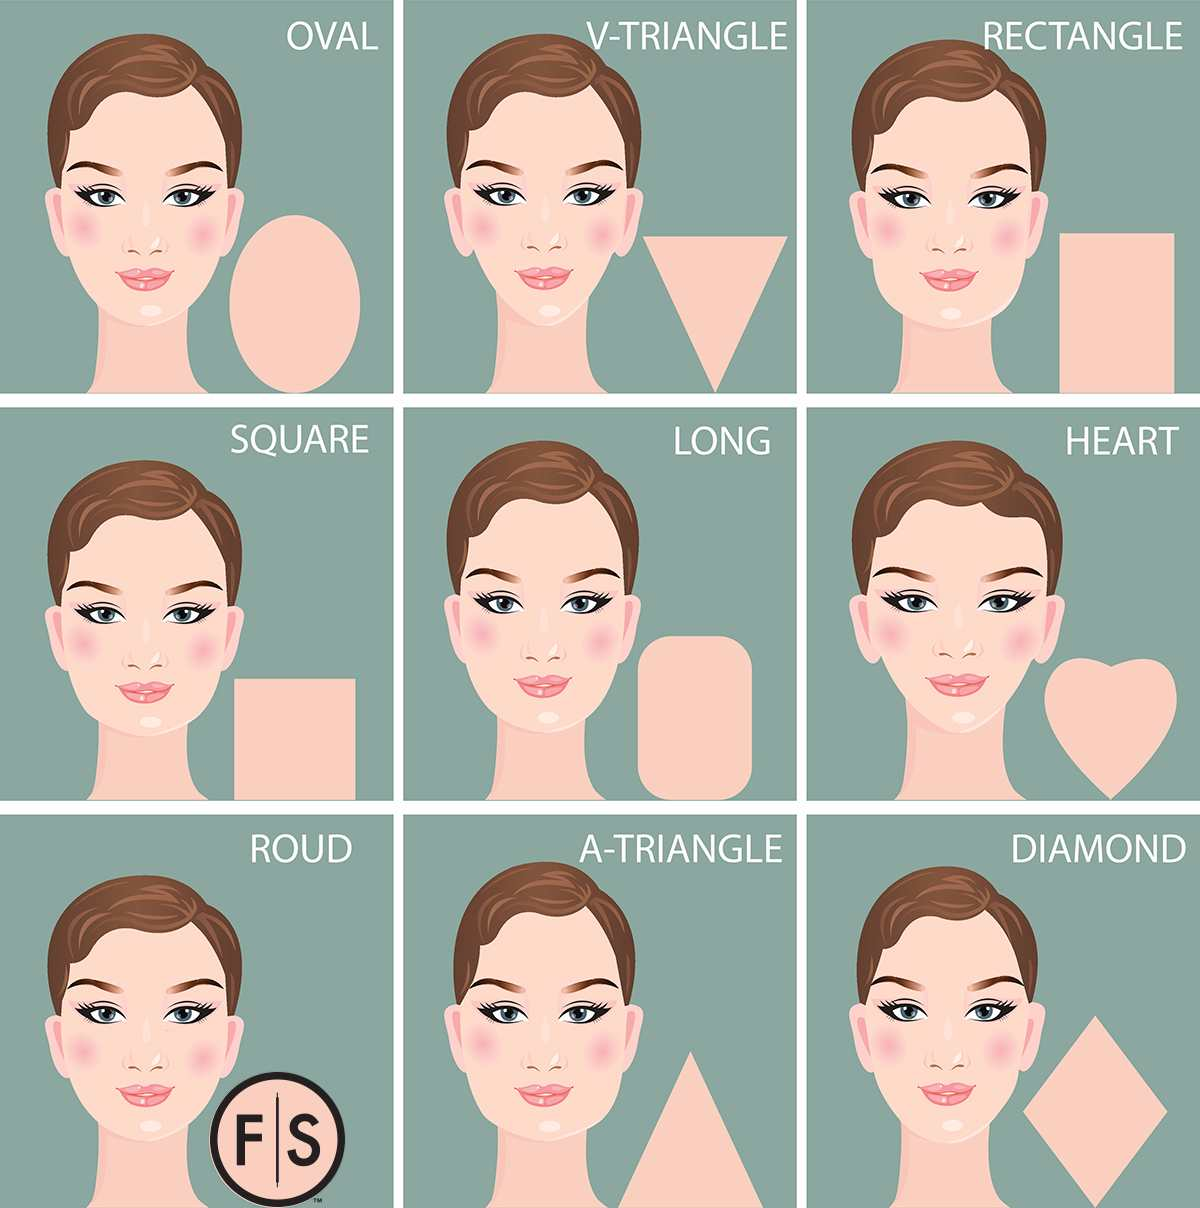 Facial shapes and hair styles